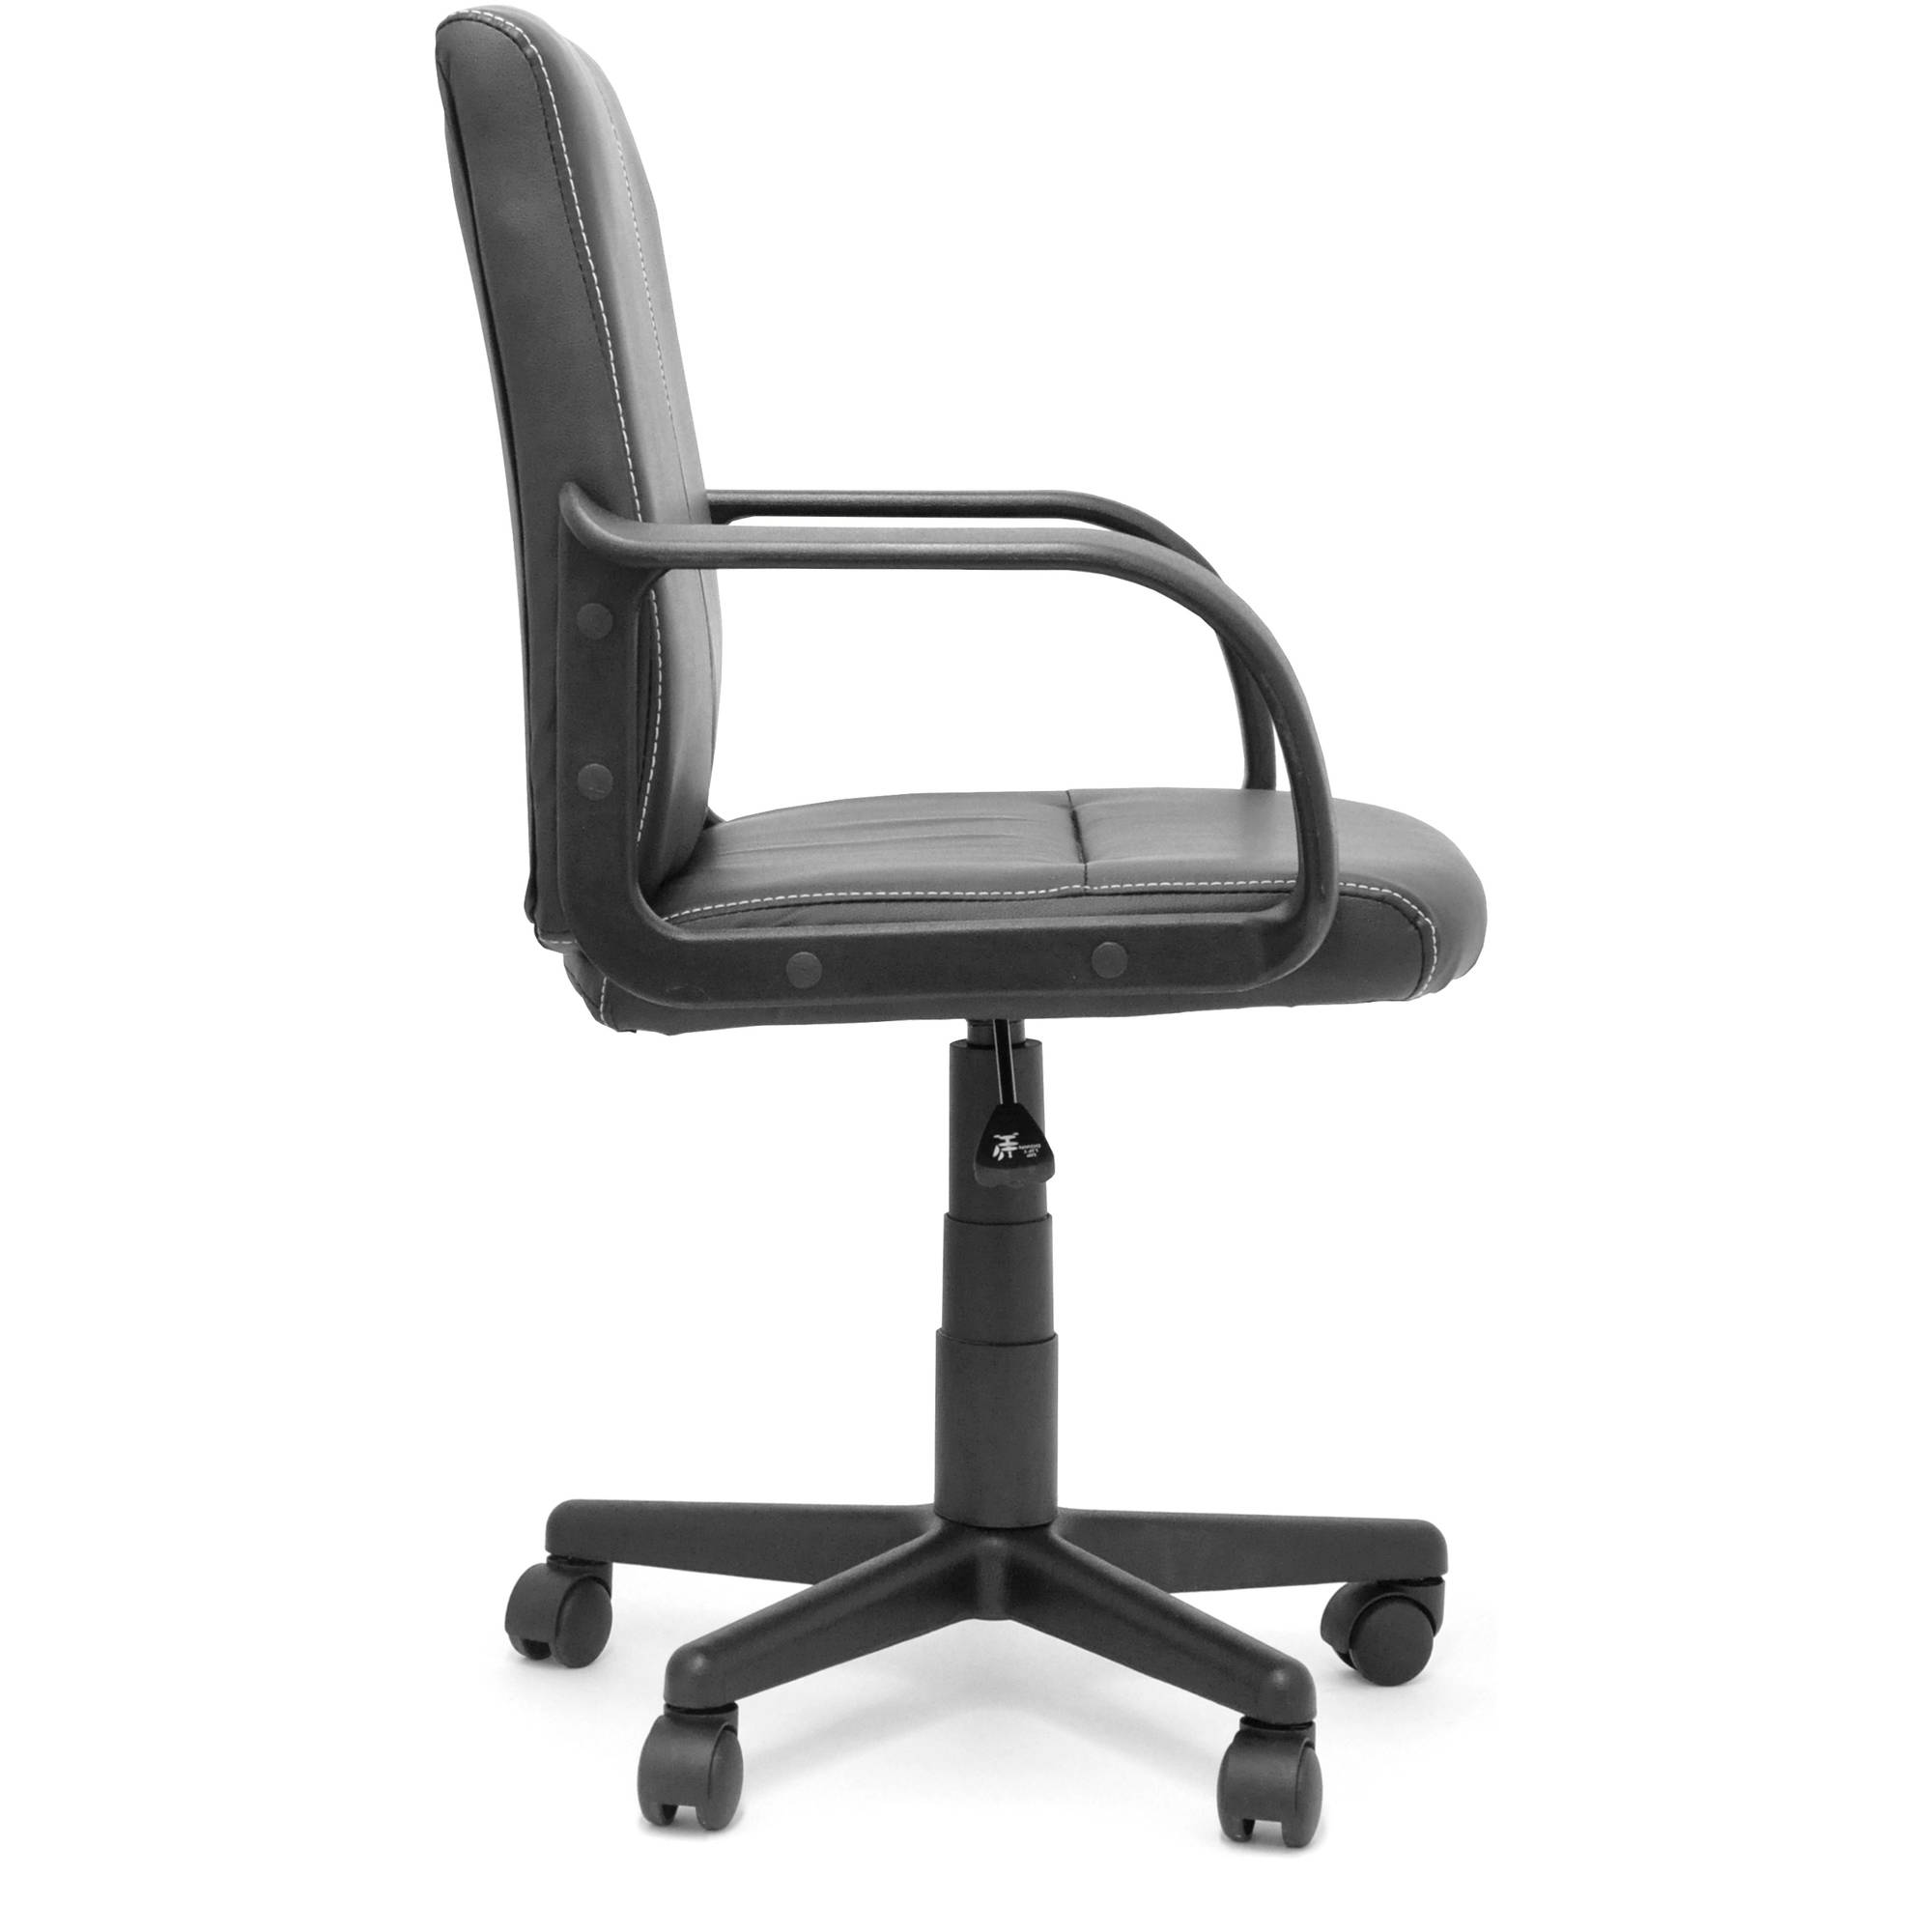 Mainstays Leather Mid Back Rolling Office Chair, Multiple Colors   Walmart .com